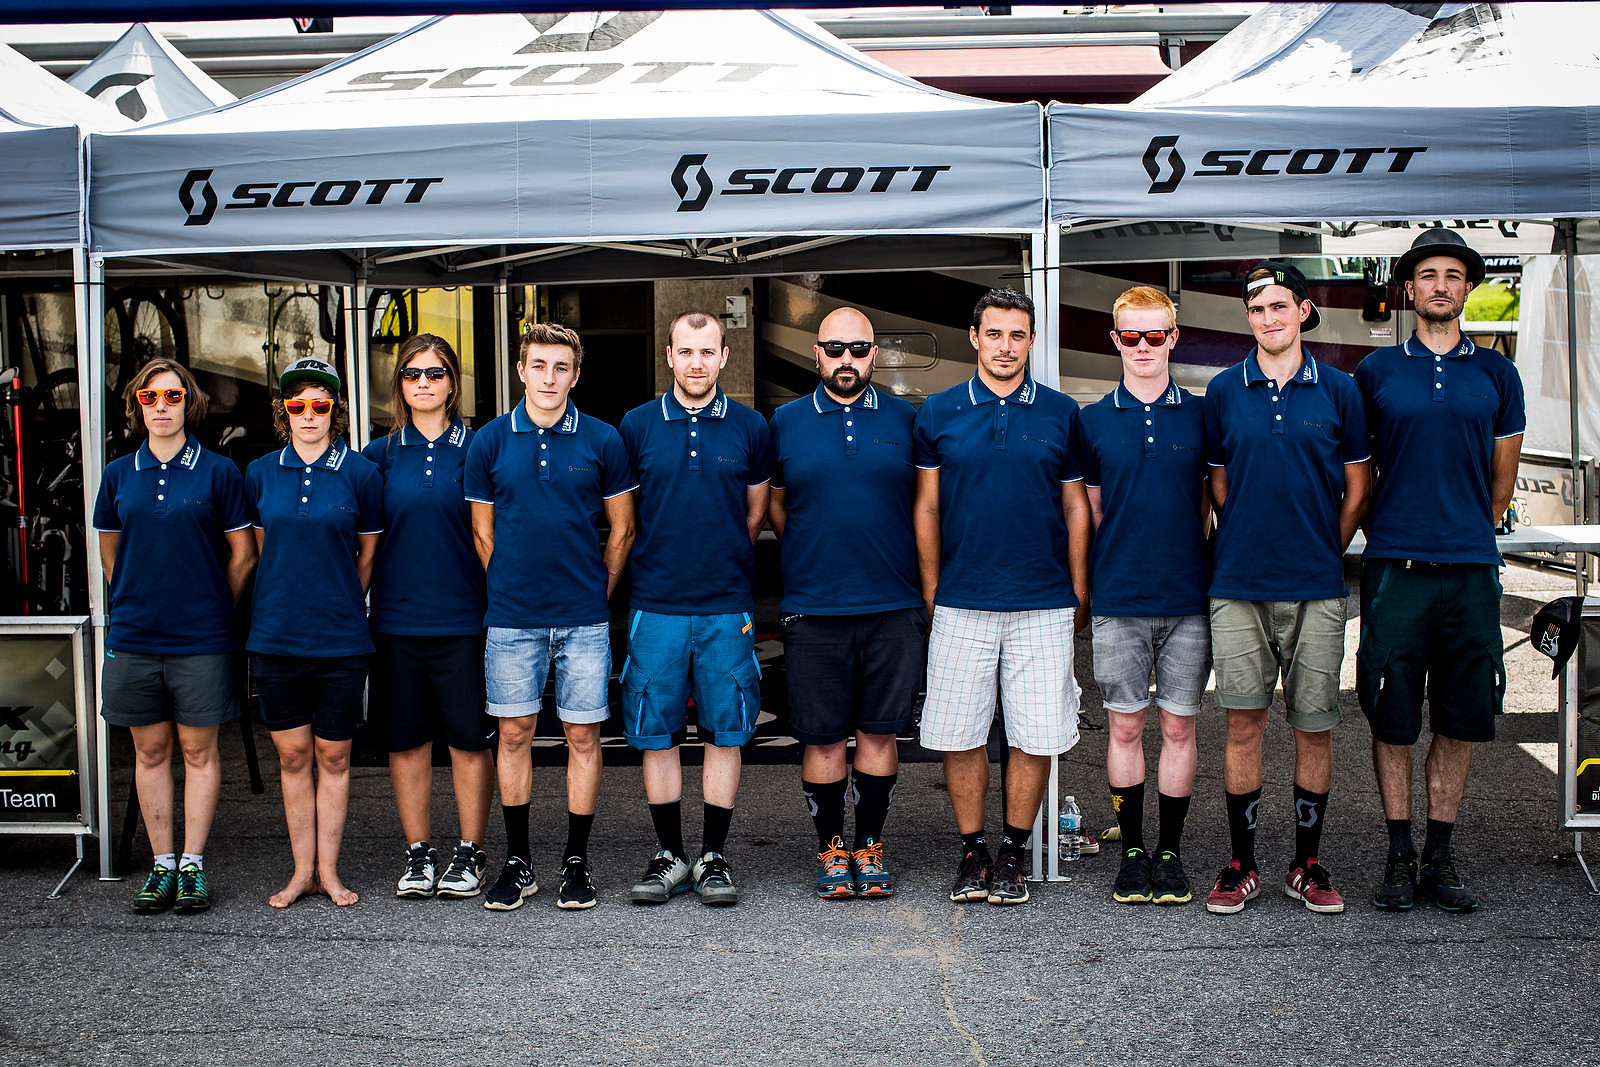 Casual Wednesday for GSTAAD Scott at Mont Sainte Anne - PIT BITS, Track Walk - It's On at Mont Sainte Anne World Cup - Mountain Biking Pictures - Vital MTB